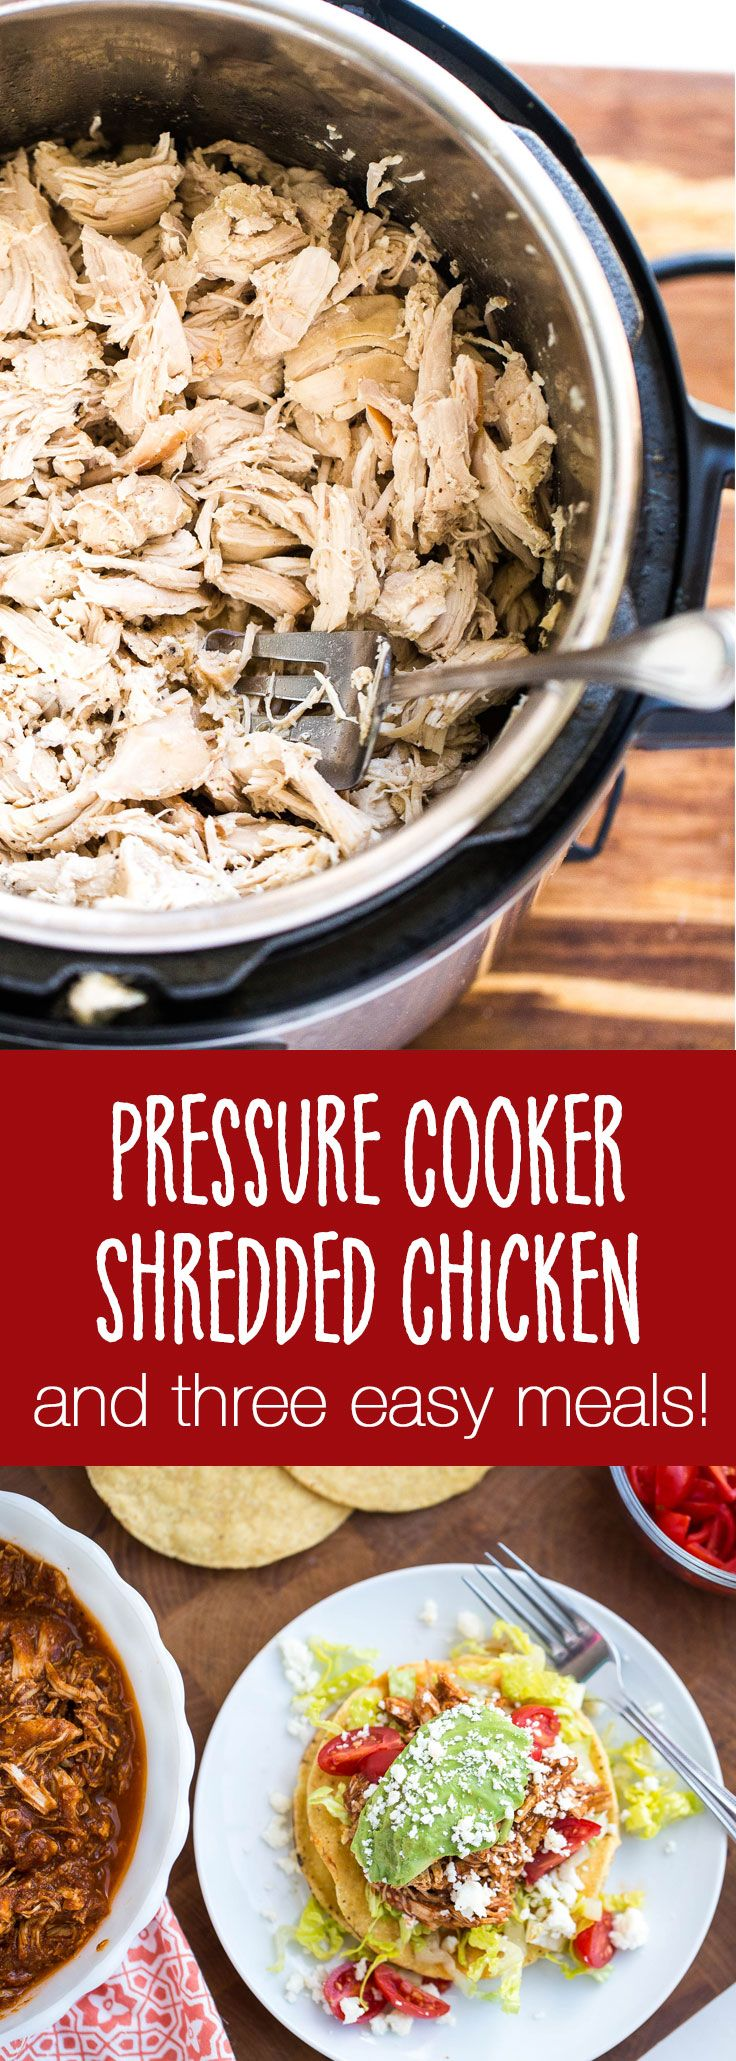 Pressure Cooker Chicken plus three easy meals you can whip up in less than 20 minutes! | meal prep | pressure cooker recipes | instant pot recipes | crock pot recipes | shredded chicken | perrysplate.com